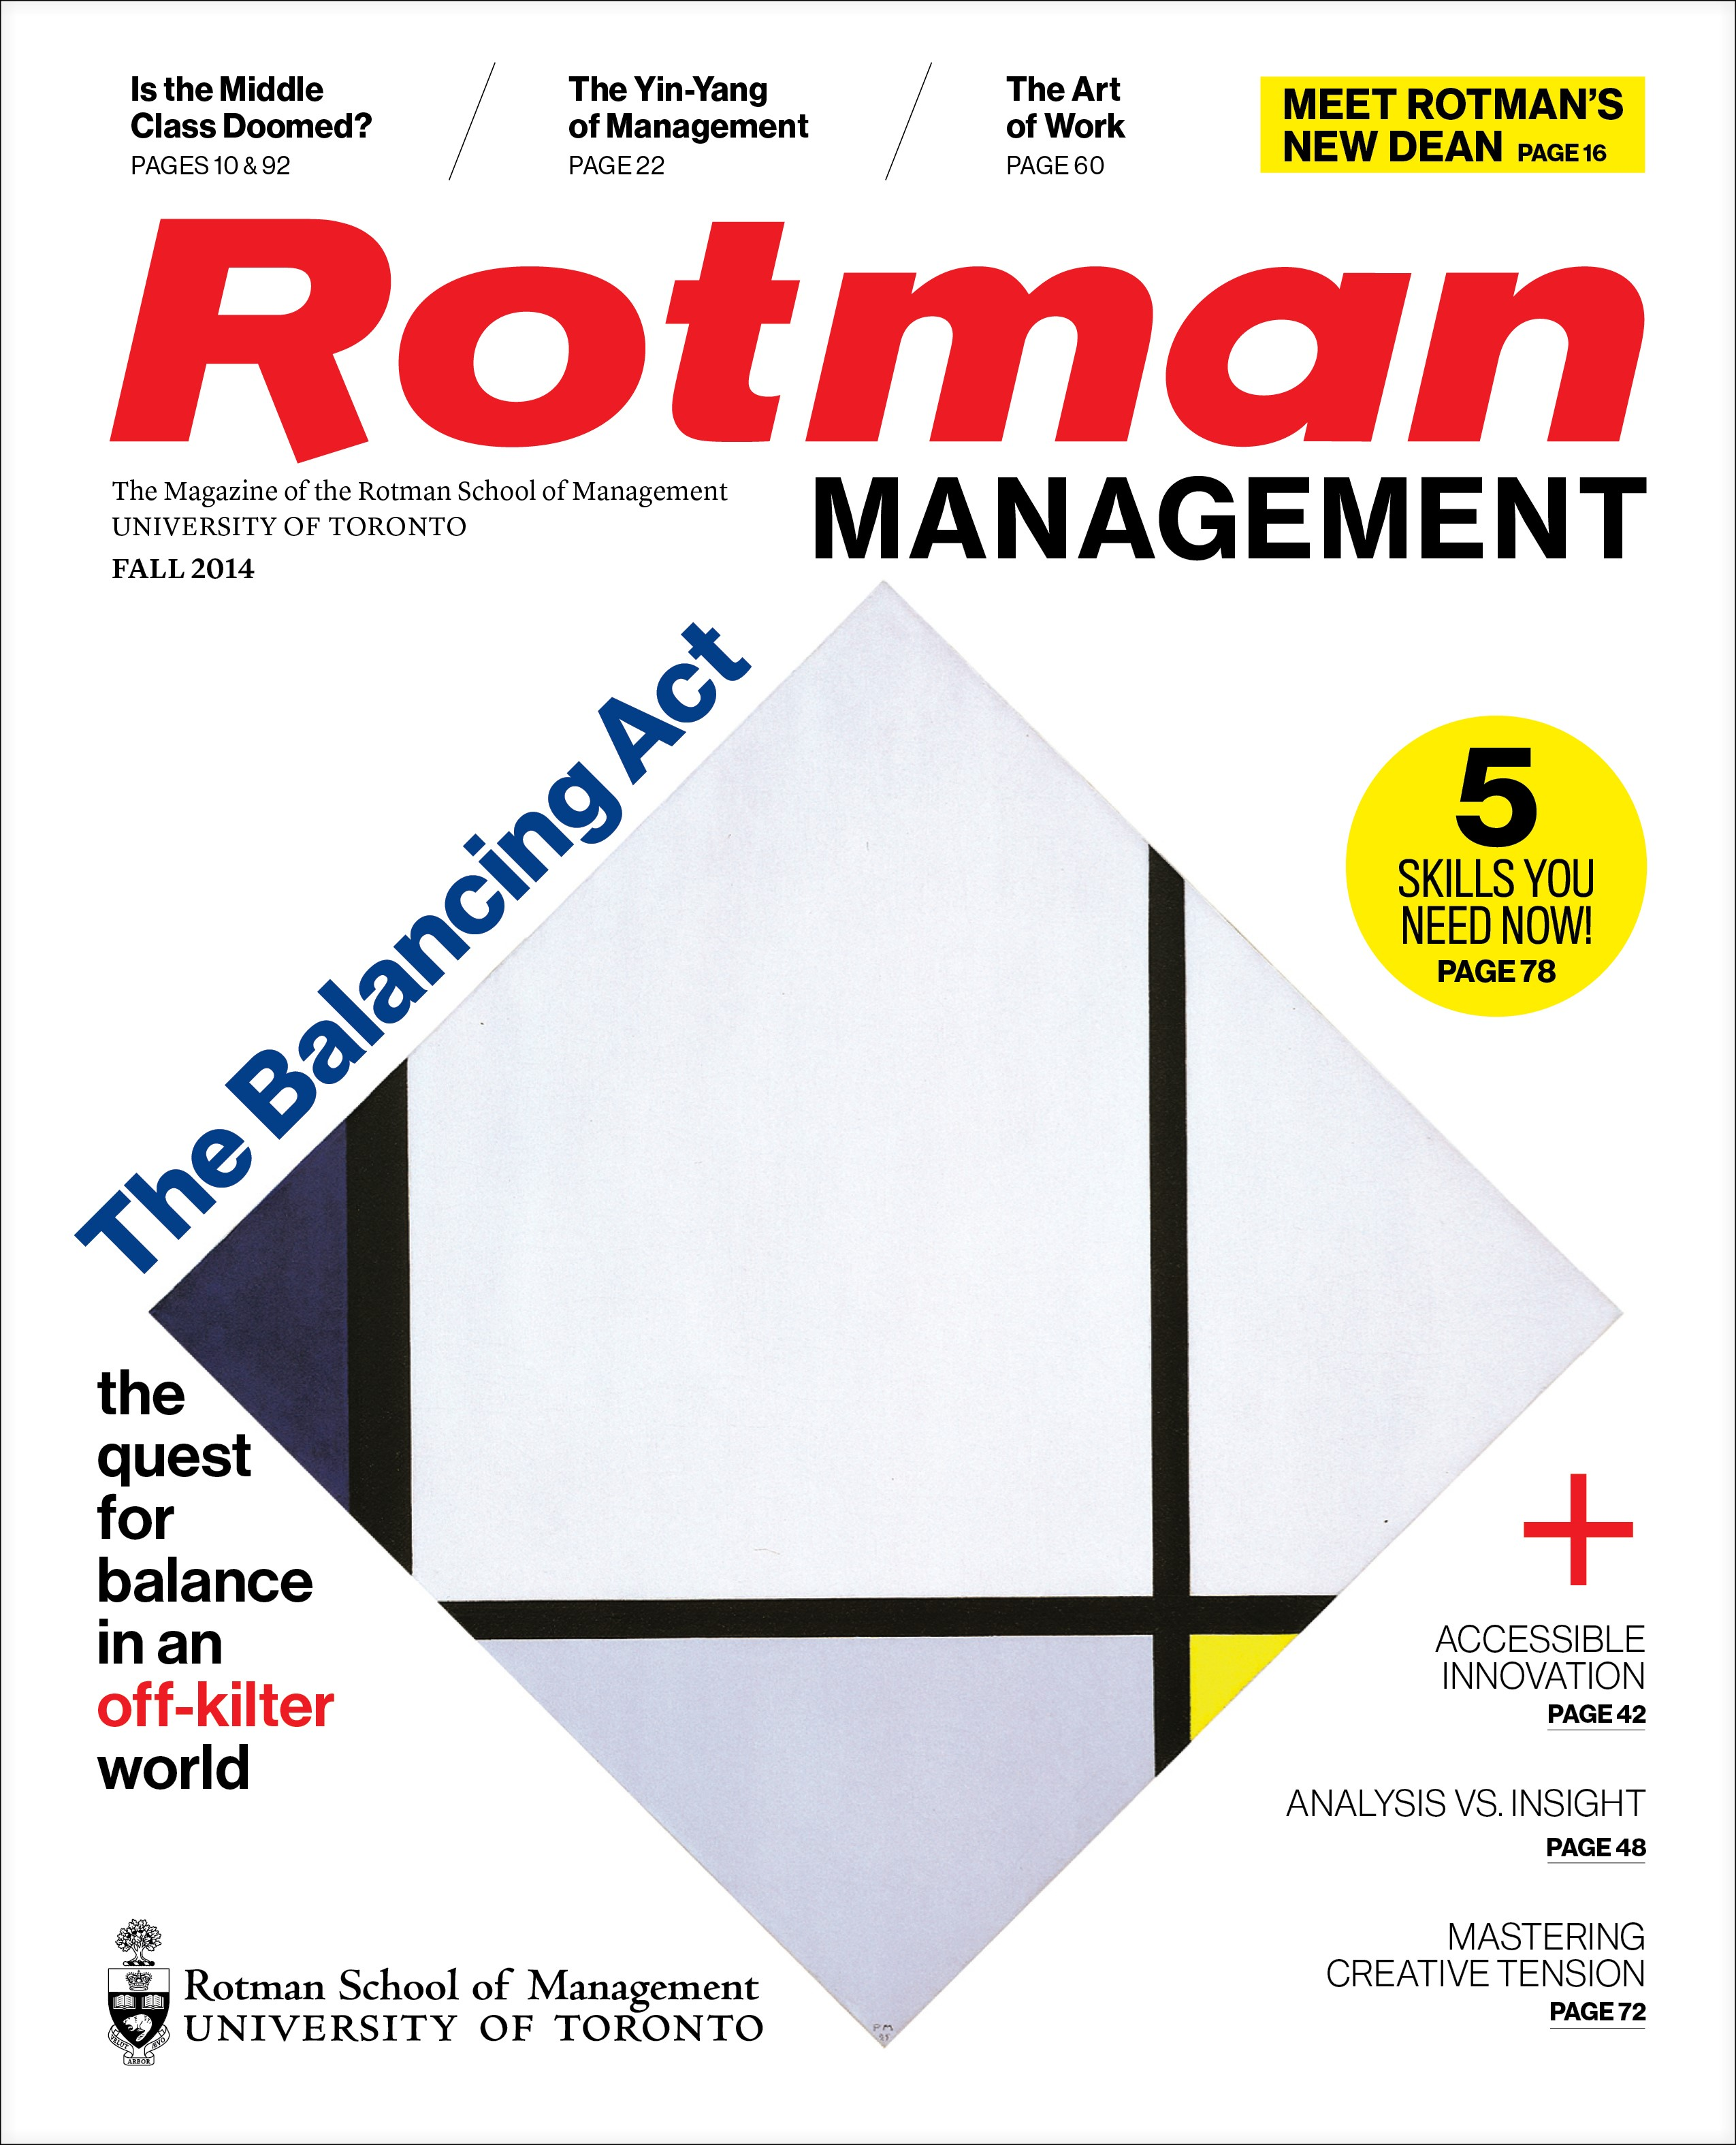 rotman mba essay questions 2013 Be yourself during the mba video essay rotman school of management to their application process in 2013 it consists of two questions which allow the.